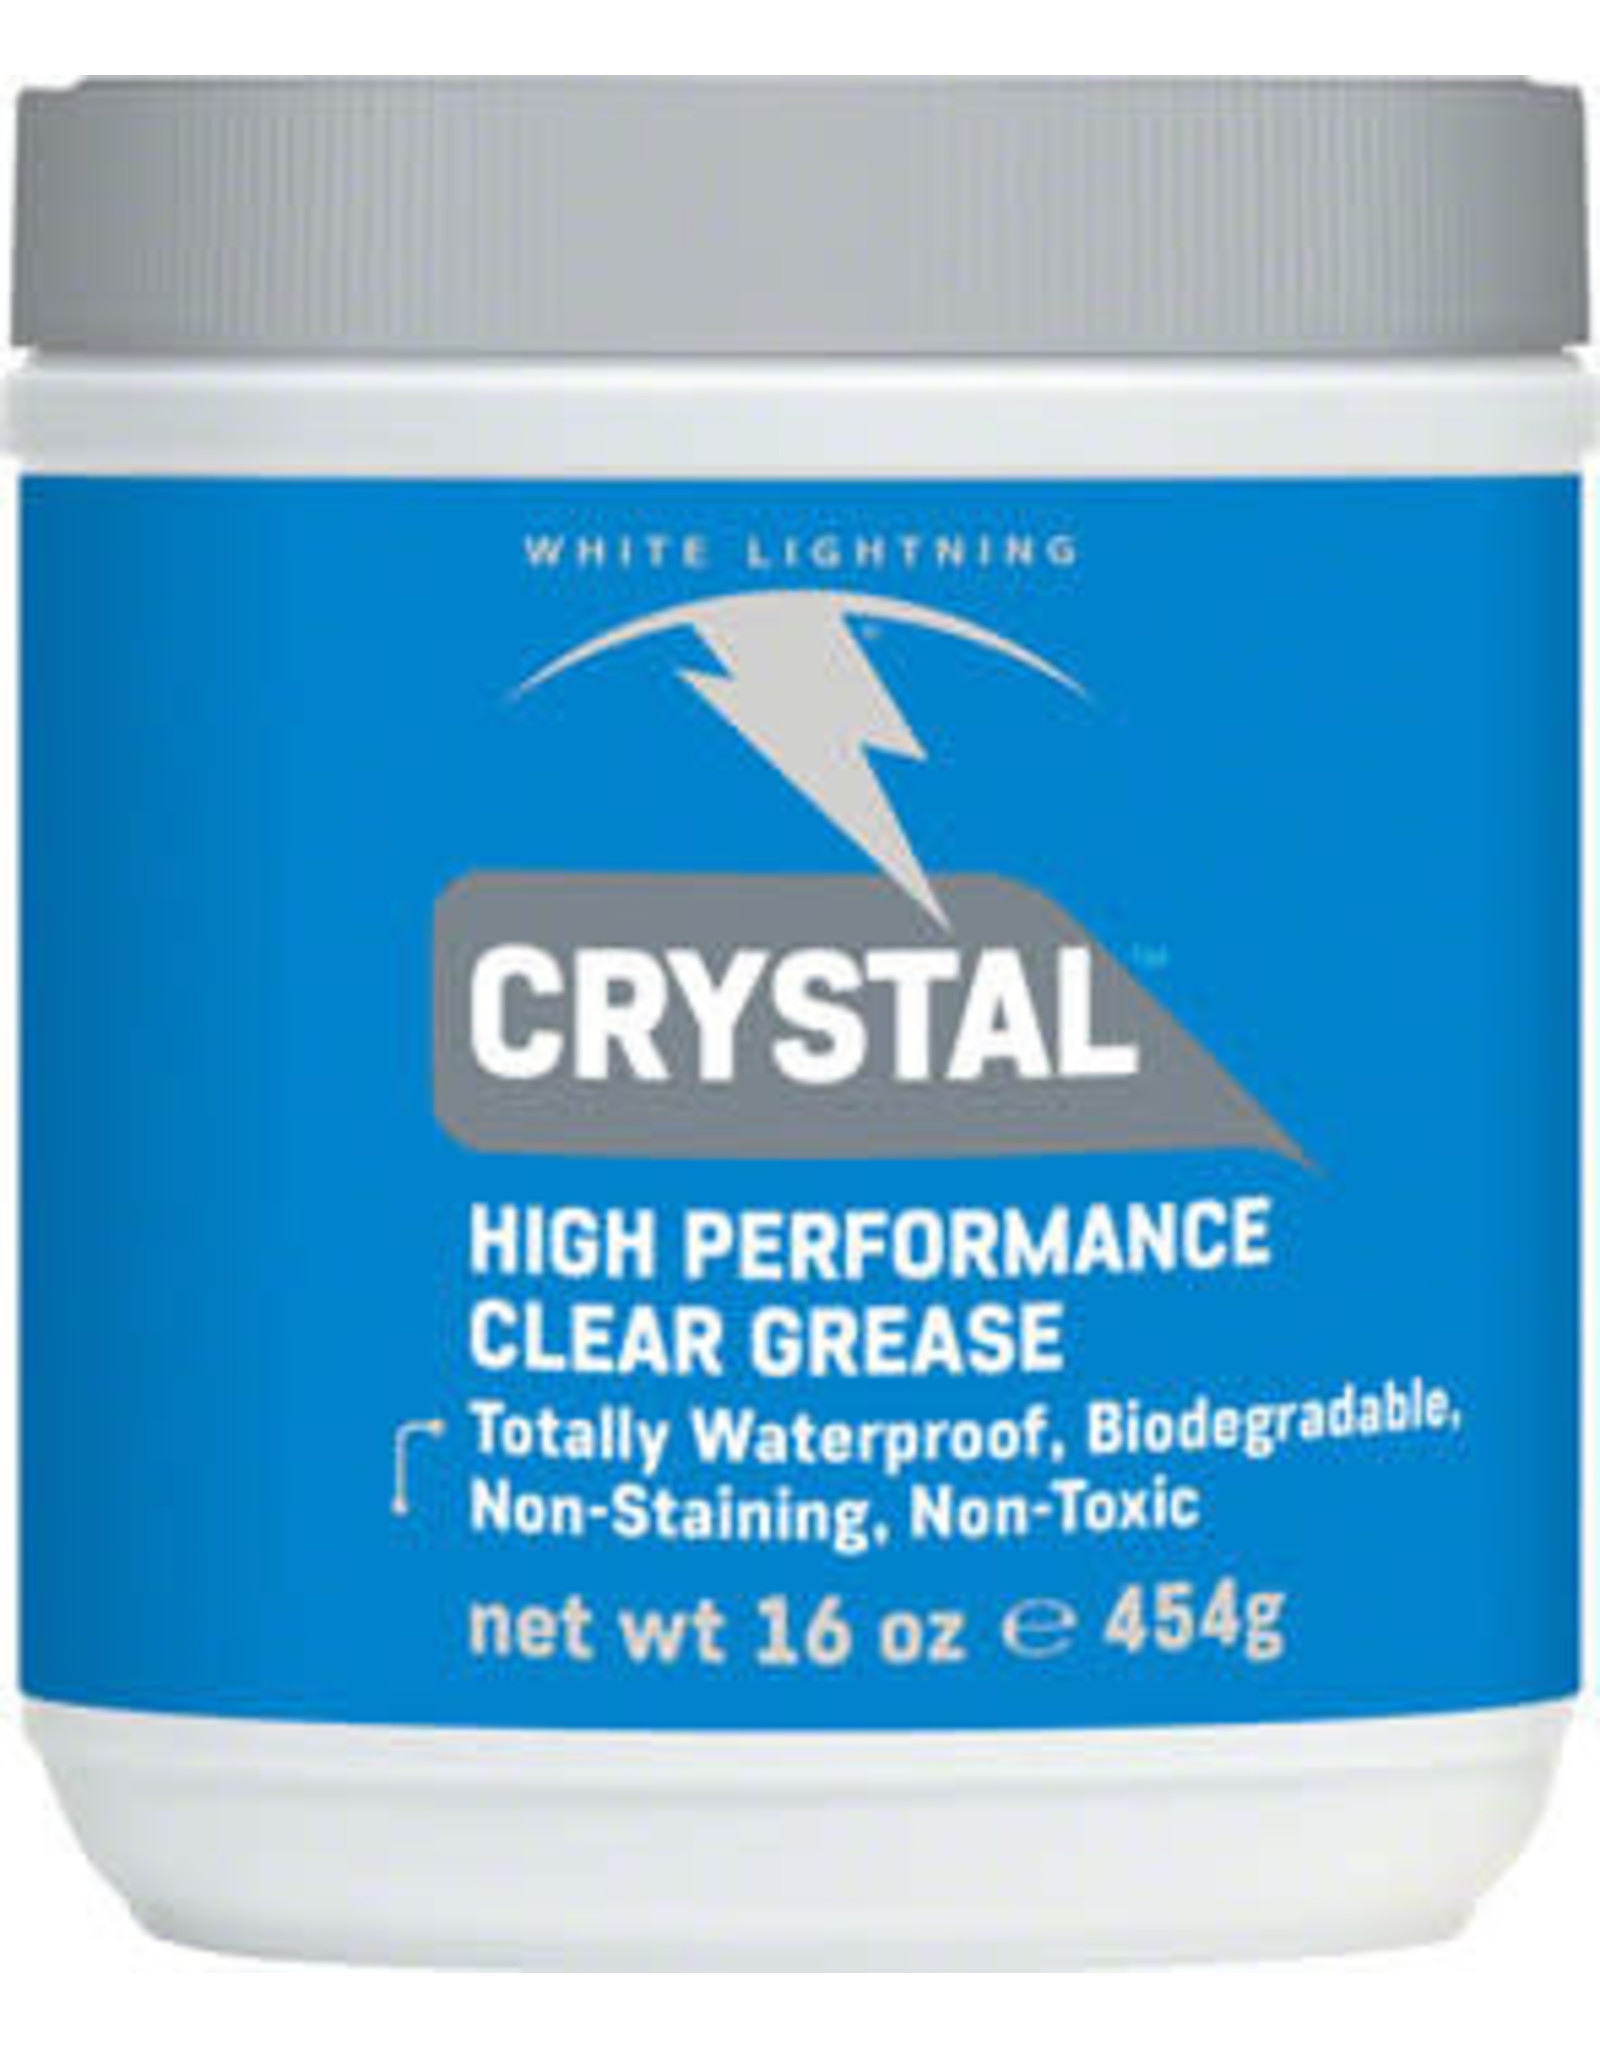 White Lightning White Lightning Crystal Grease 16oz Tub